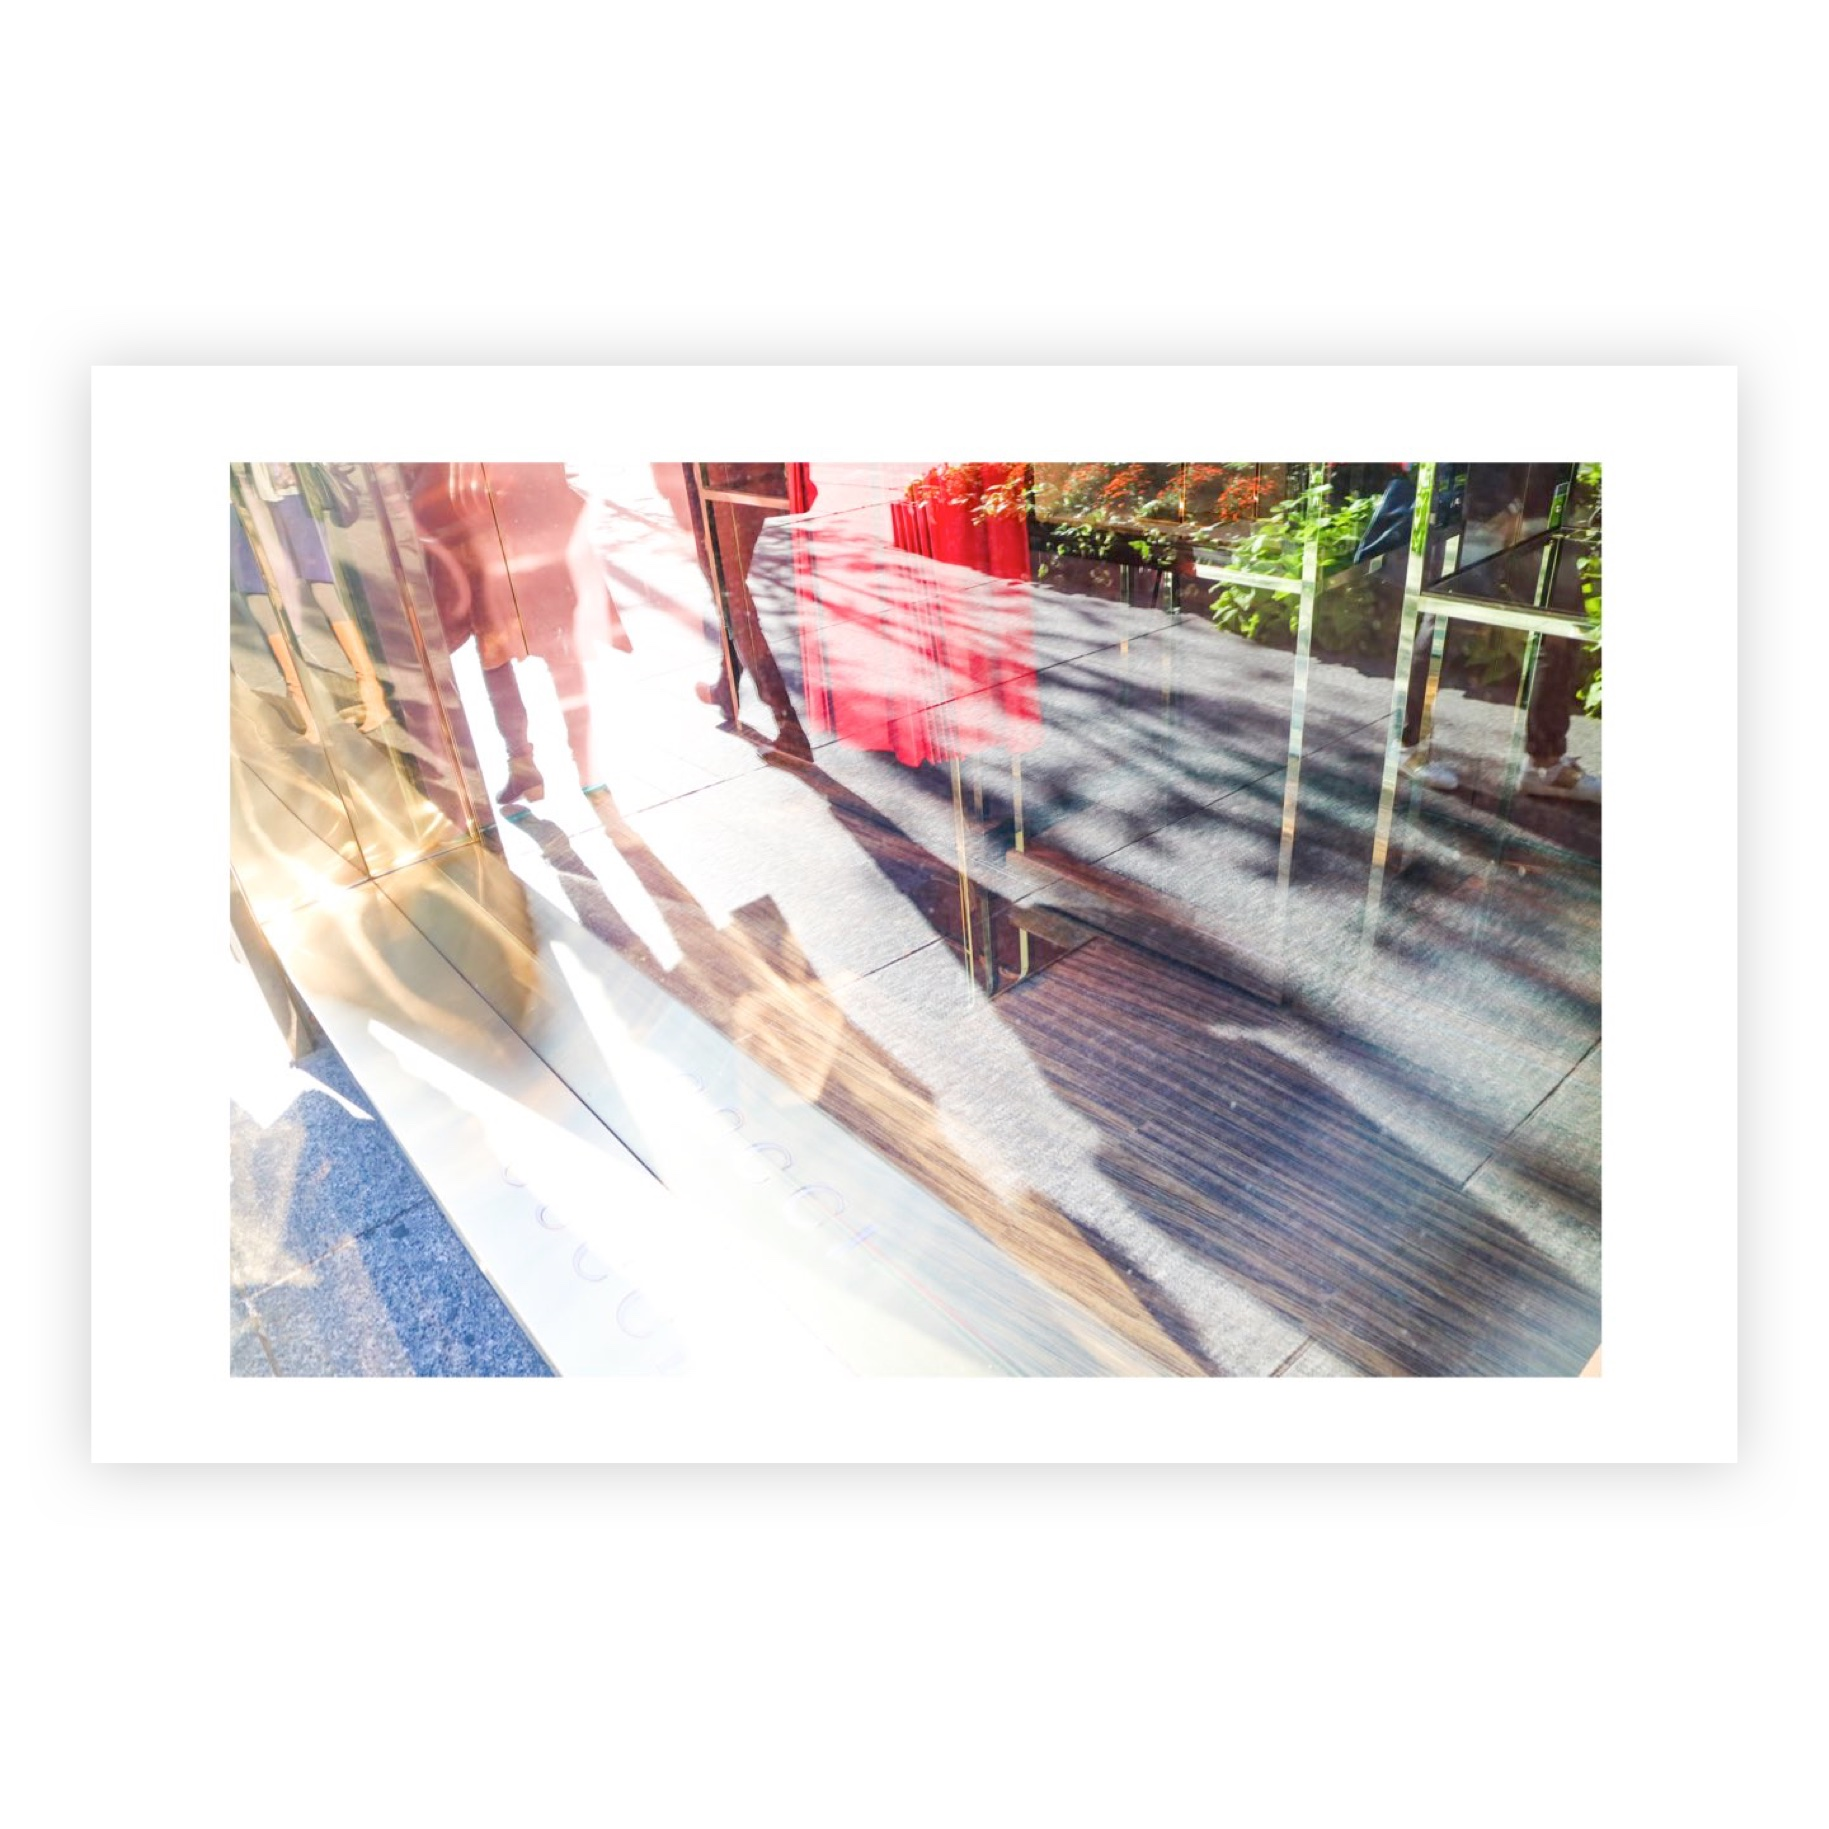 WALK INTO THE LIGHT LIMITED EDITION PRINT